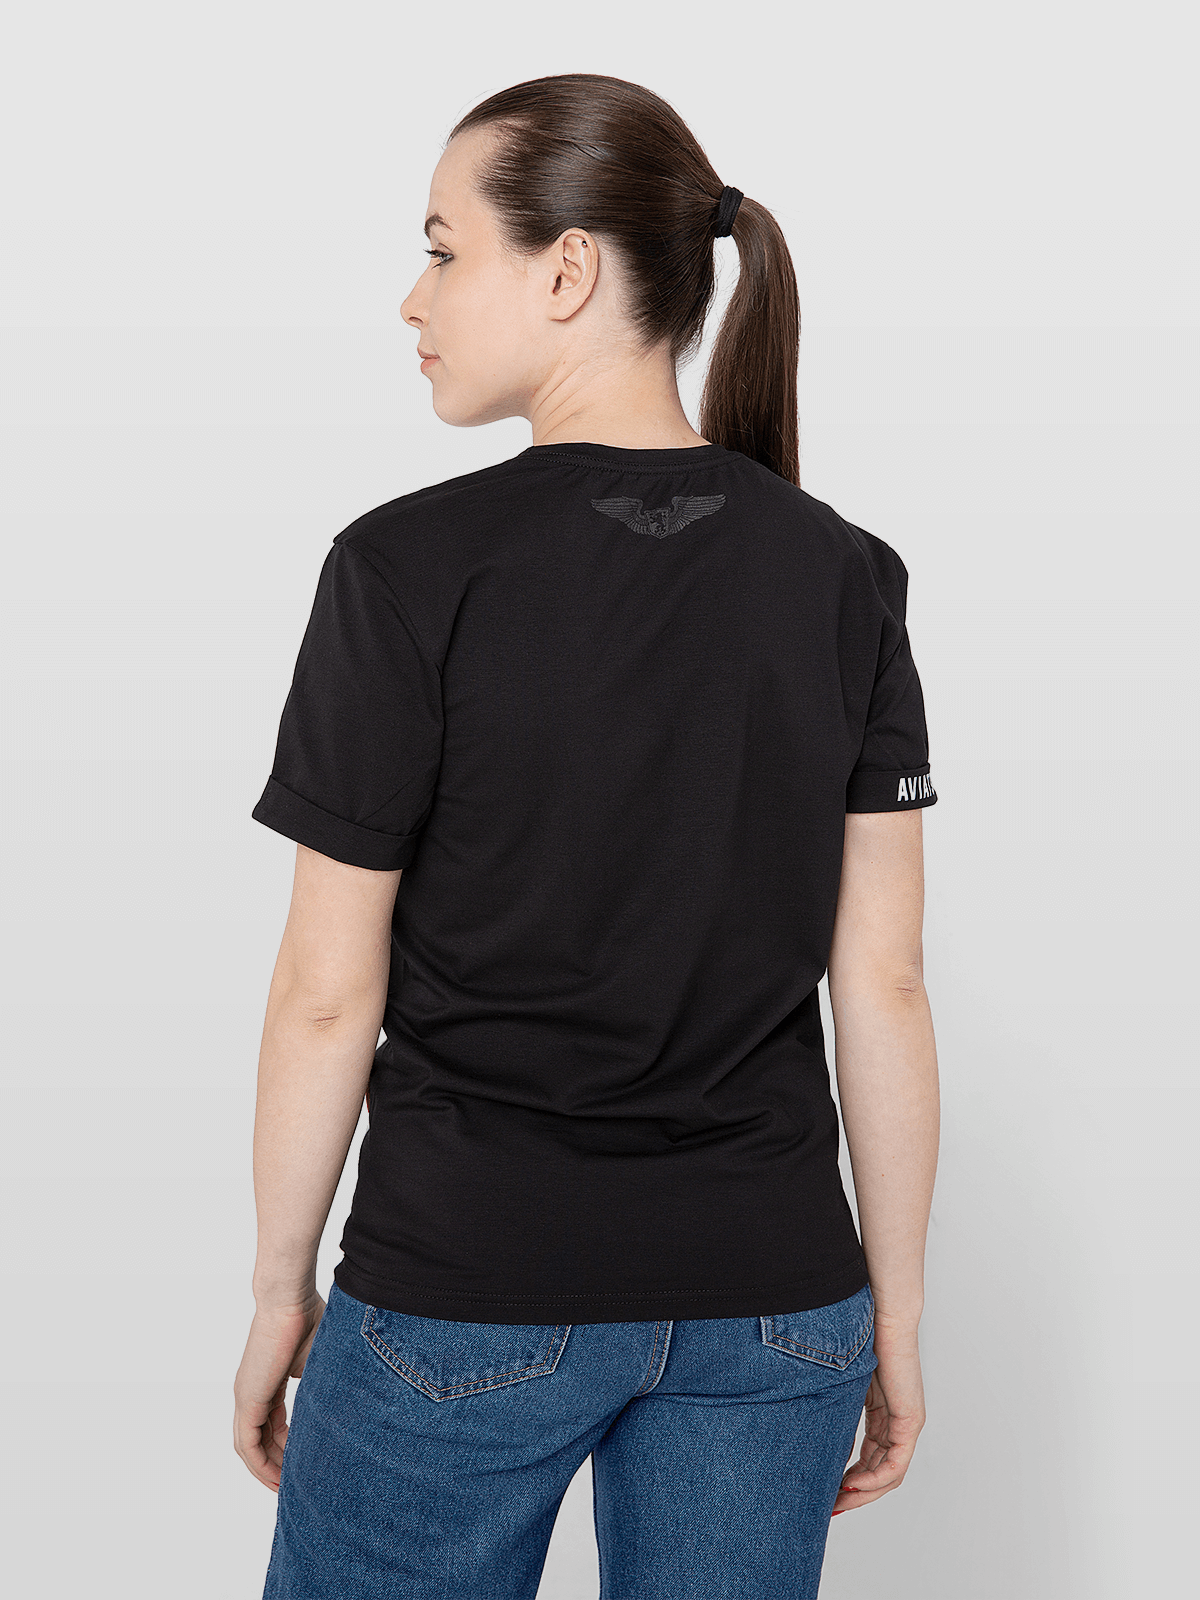 Women's T-Shirt Mriya 1989. Color black.  Don't worry about the universal size.